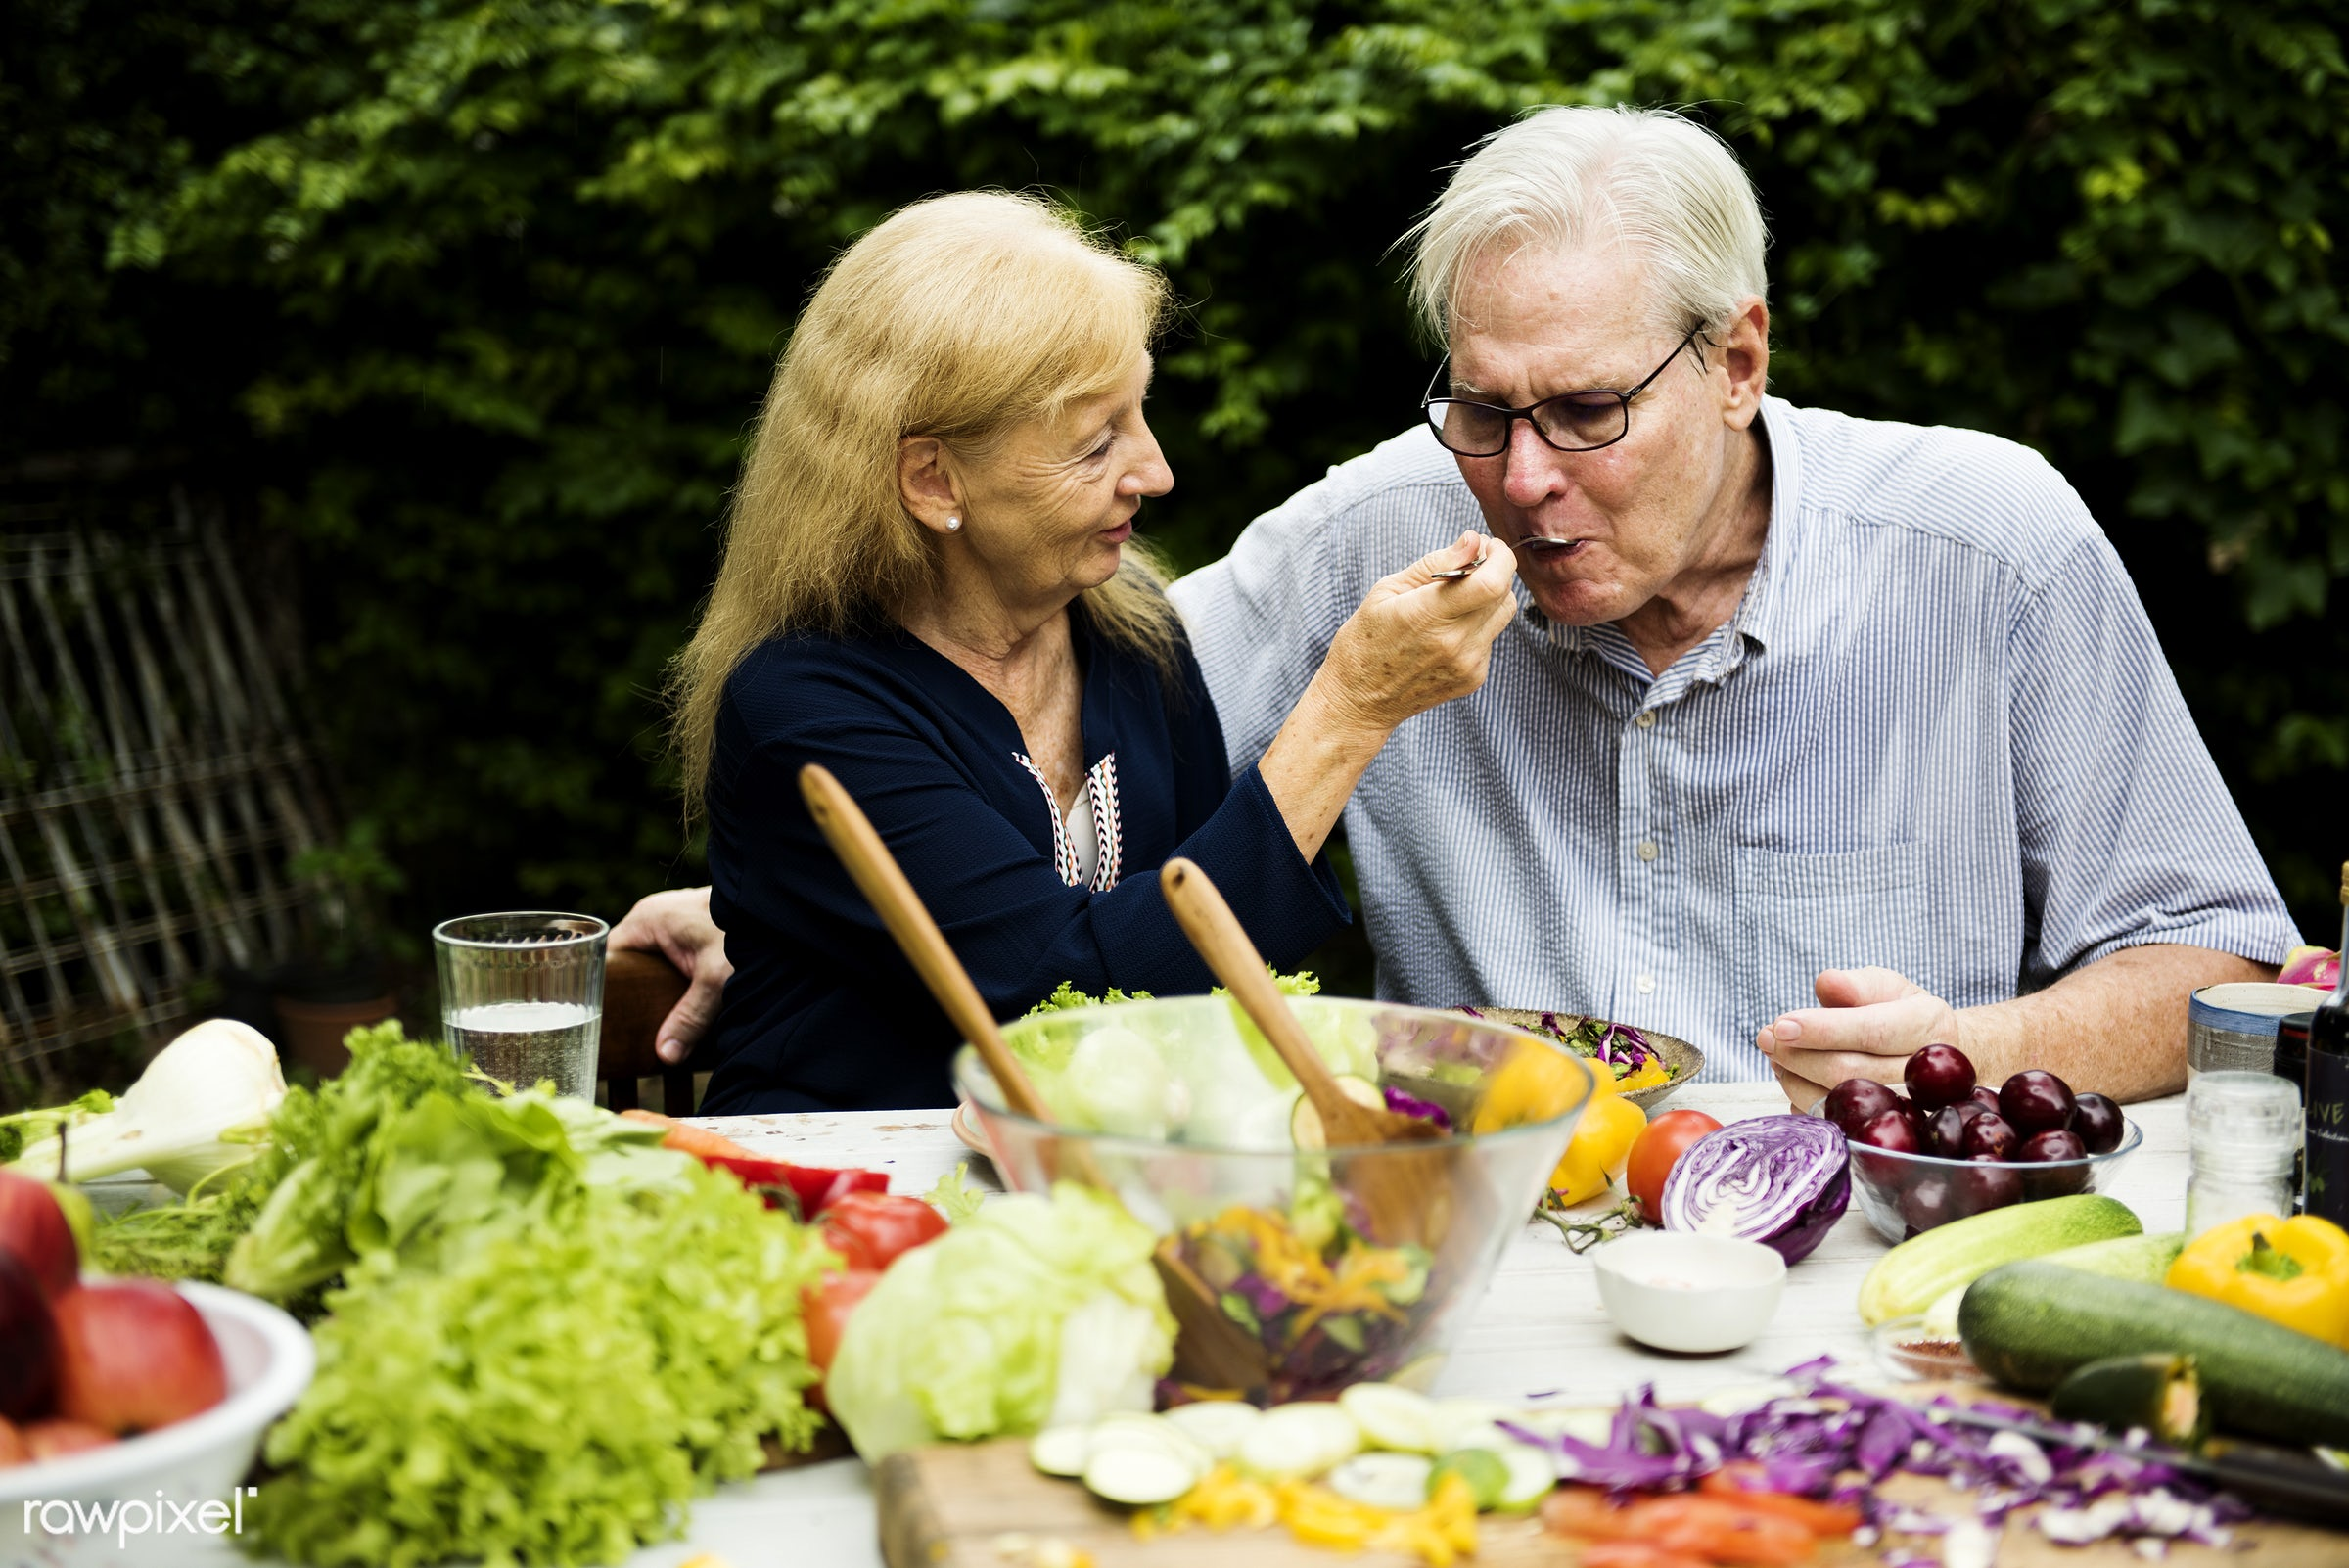 different, salad, recipe, cuisine, homemade, fresh, woman, couple, ingredient, gourmet, man, meal, cook, preparation,...